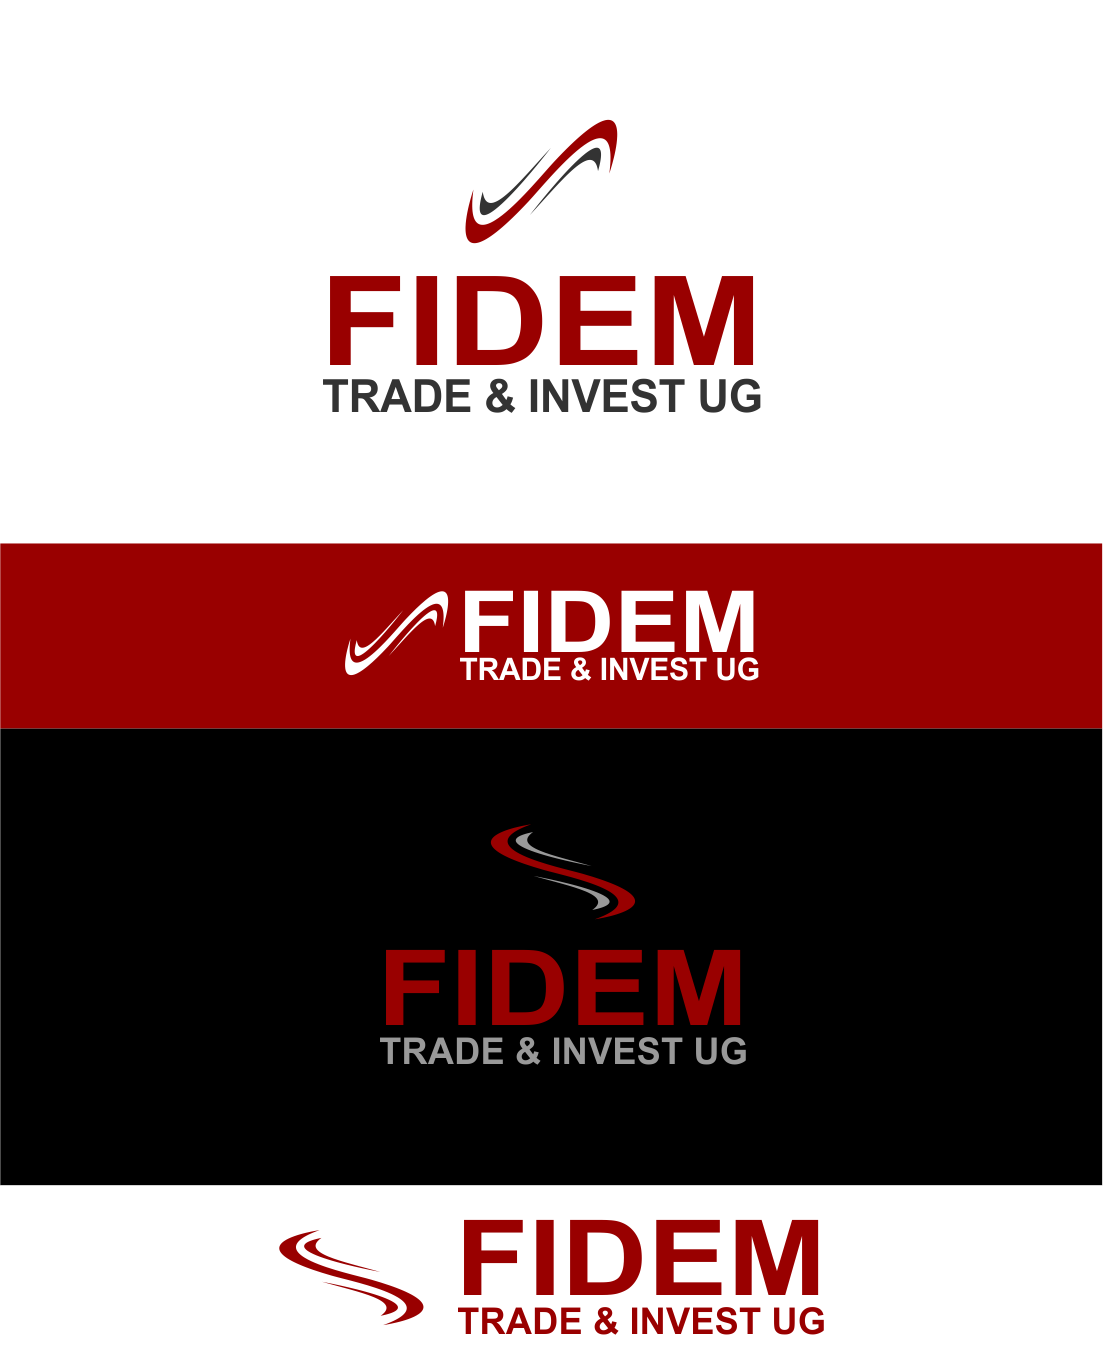 Logo Design by Agus Martoyo - Entry No. 631 in the Logo Design Contest Professional Logo Design for FIDEM Trade & Invest UG.